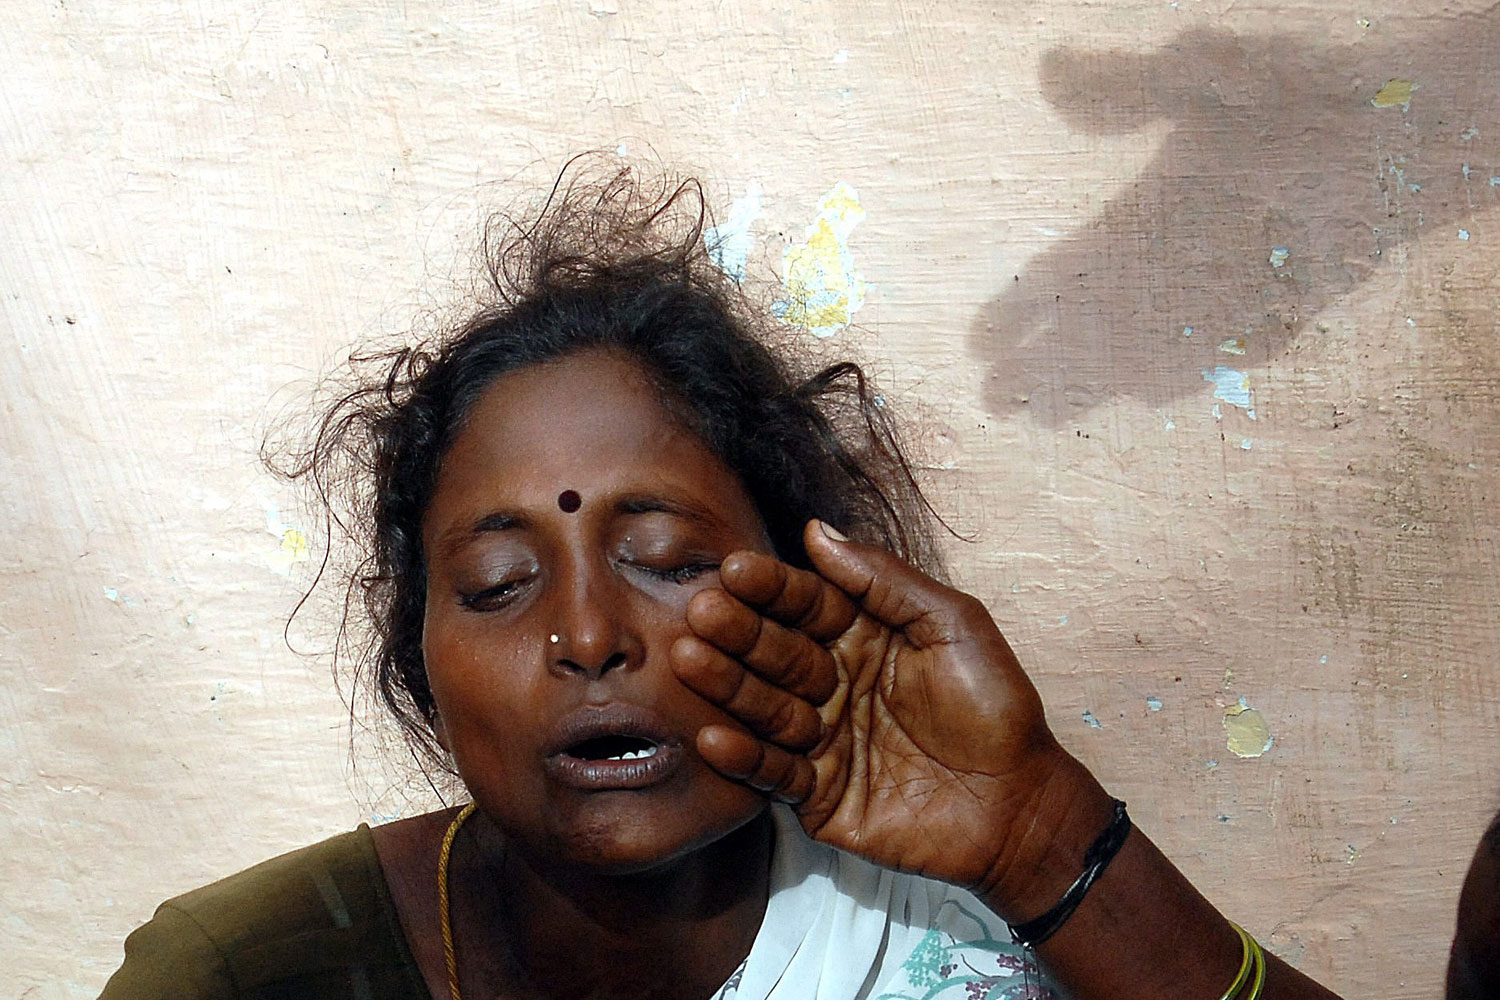 September 14, 2011. An Indian relative of a victim of the train accident at the Chitheri station is consoled as she cries outside the Arakkonam Government Hospital, 90kms from Chennai, India. At least nine people died and more than 100 injured after a passenger train crashed into a stationary train, late September 13. Accidents are common on India's vast rail network, on which more than 13 million passengers travel each day.